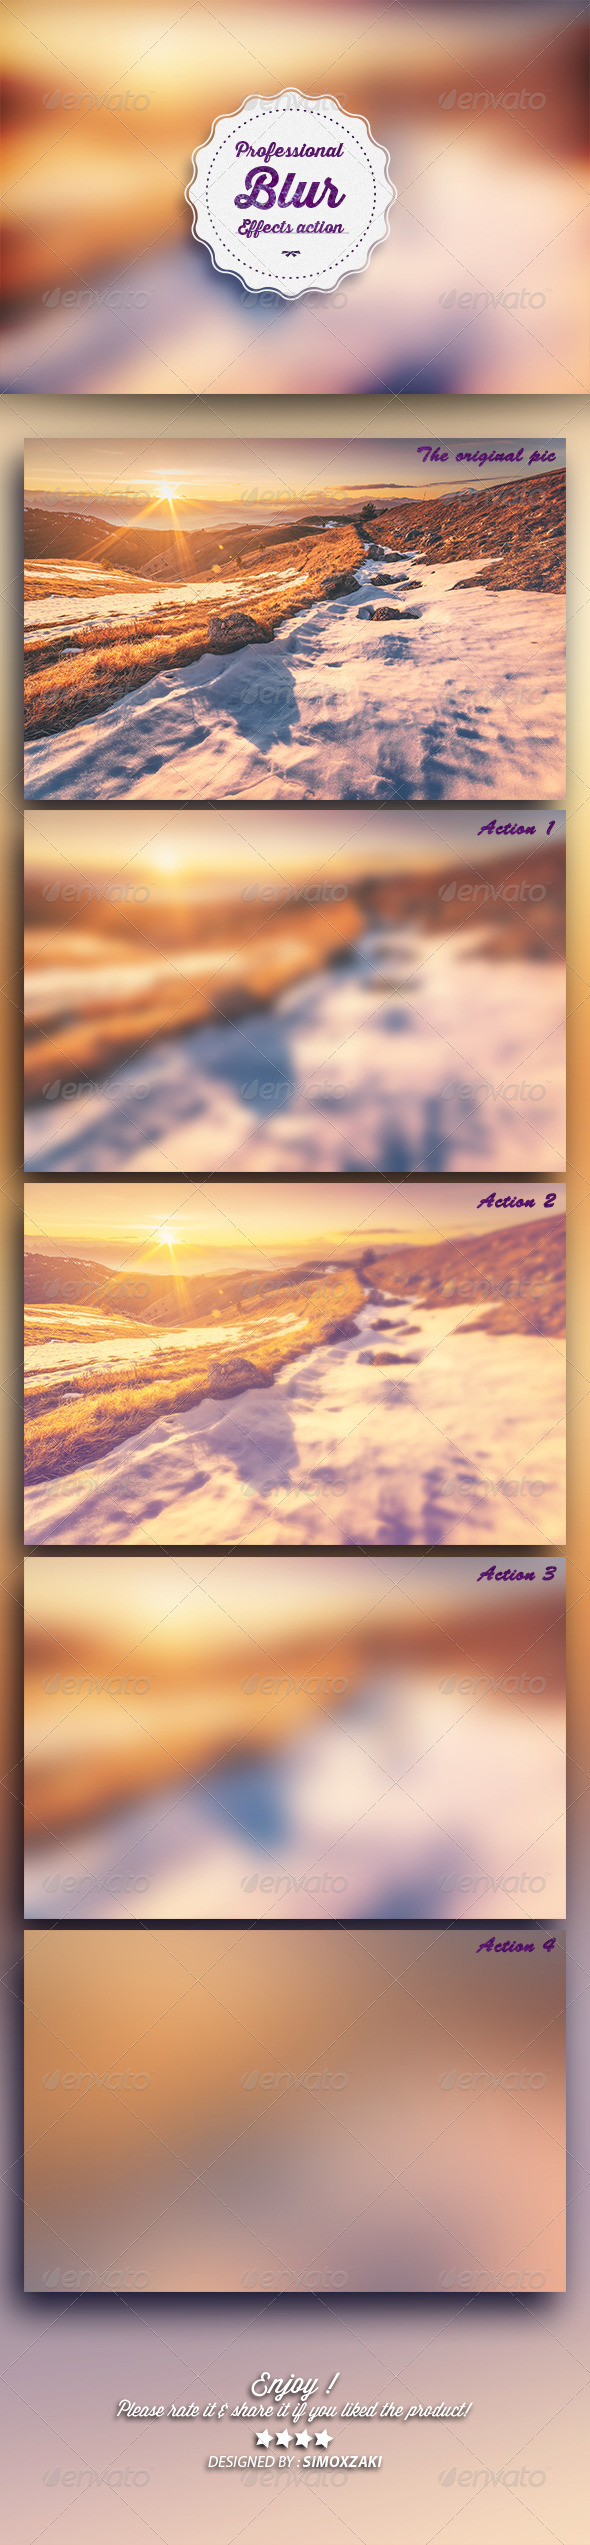 GraphicRiver Professional Blur Effects 8234073